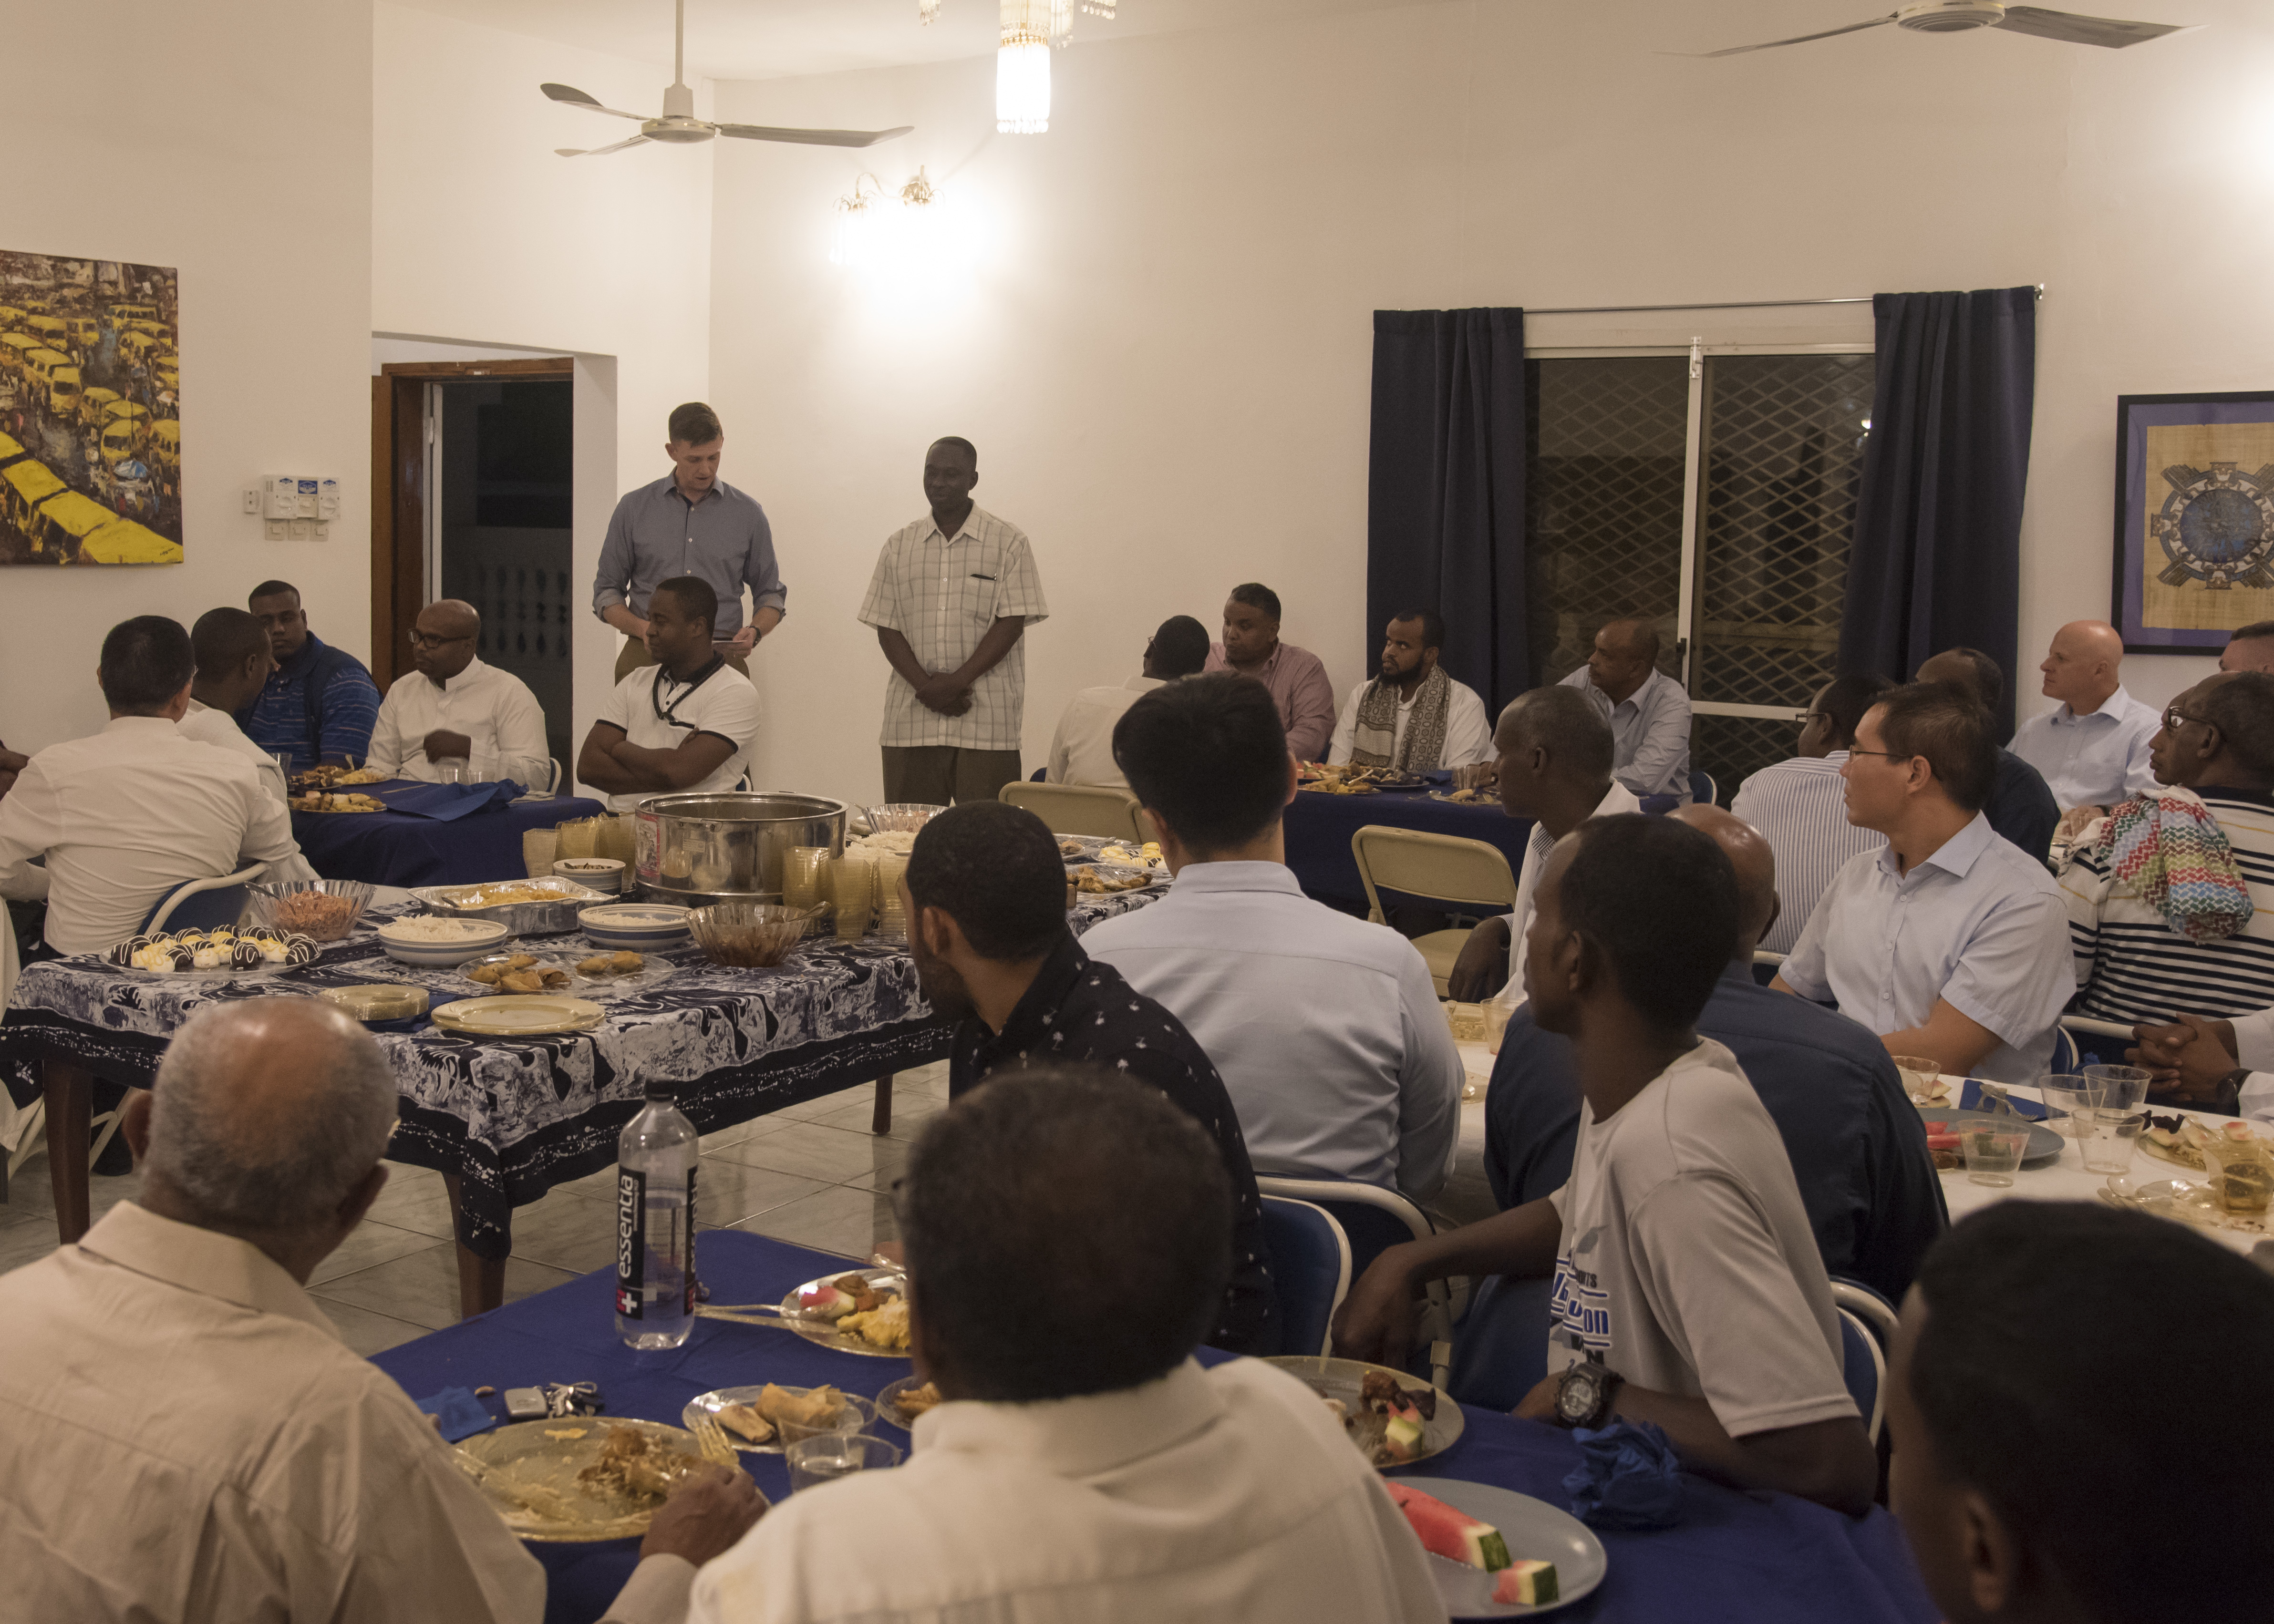 U.S. Navy Cmdr. Sean Hays, U.S. Embassy Djibouti senior defense official and defense attaché, introduces U.S. Army Capt. Ayub Laari, a chaplain assigned to the 39th Transportation Battalion, Kleber Kaserne, Germany, during an Iftar celebration, May 12, 2019. The Iftar is a fast-breaking meal Muslims eat after sunset during Ramadan, the ninth month of the Islamic year observed with daily fasting from dawn to sunset. Laari served as the event's Imam, a worship leader in the Islamic faith. (U.S. Air Force photo by Staff Sgt. Kirsten Brandes)